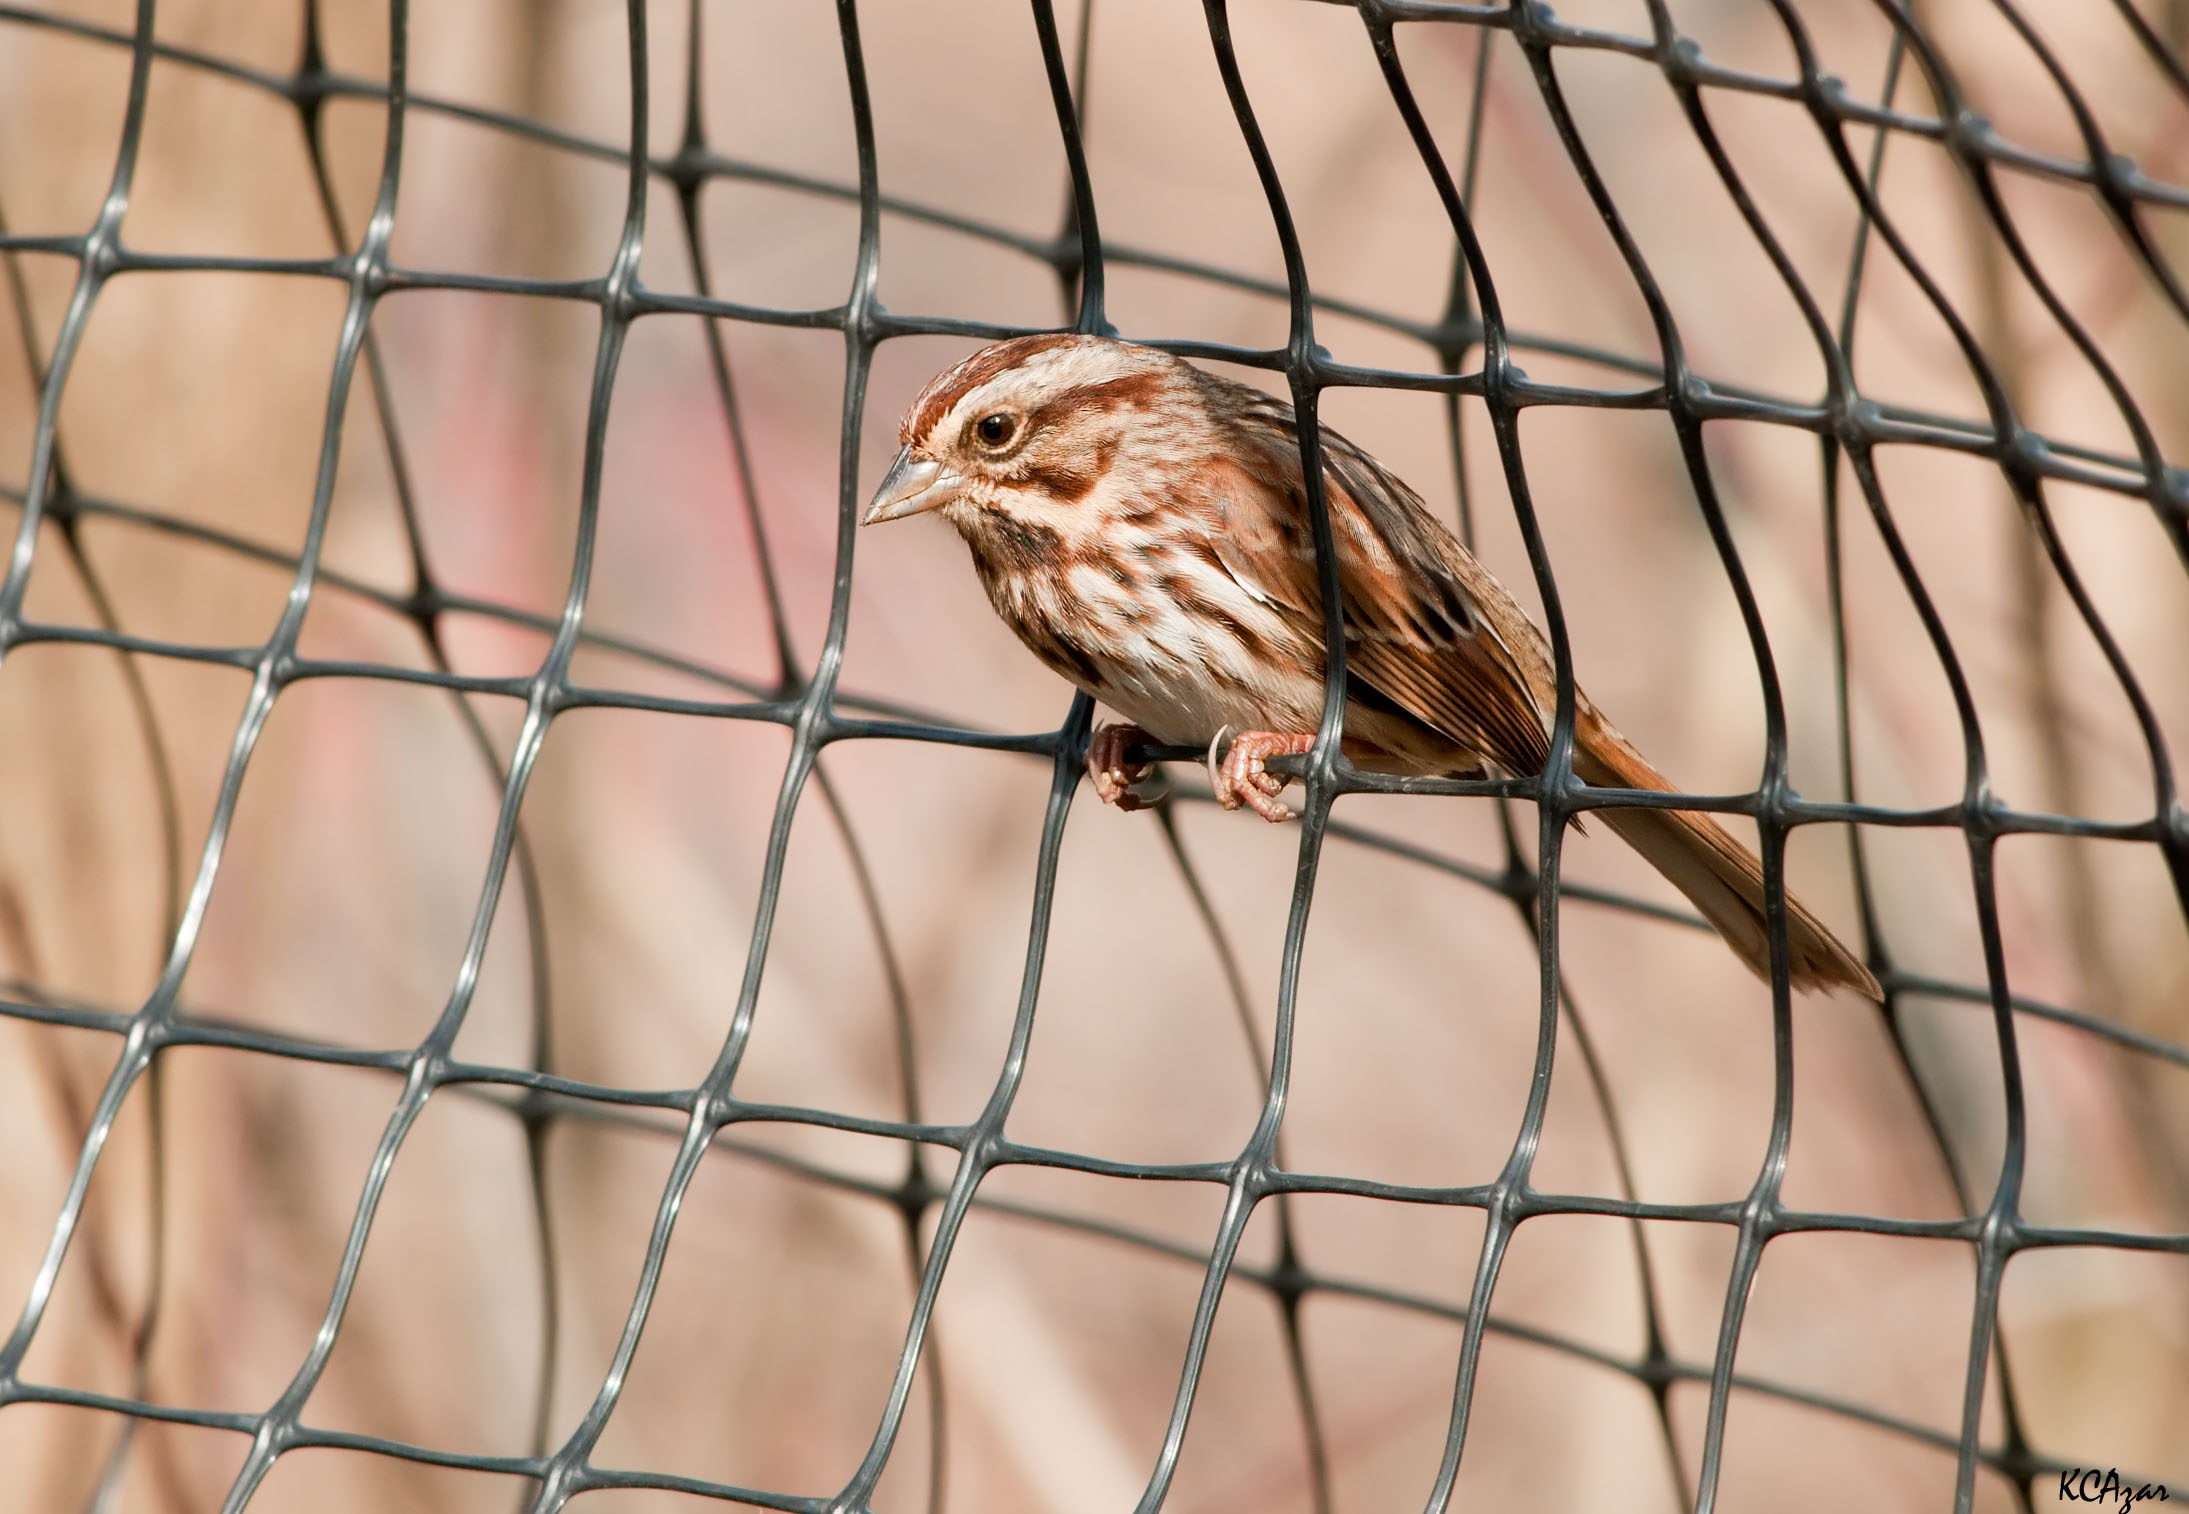 """- Song Sparrow (Melospiza melodia)Song Sparrows live in deciduous and mixed open woodland. Their diet consists of invertebrates such as insects, arachnids, and mollusks, seeds, fruit, and berries. Their wingspan is 7.1-9.4 in. and they weigh 0.4-1.9 oz. Song Sparrows' call starts with """"chip-chip-chip-chippeerr"""" and ends with a mechanical sounding trill and chip notes. They are protected on the US Migratory Bird list.Photo Credits: Kelly Colgan Azar"""